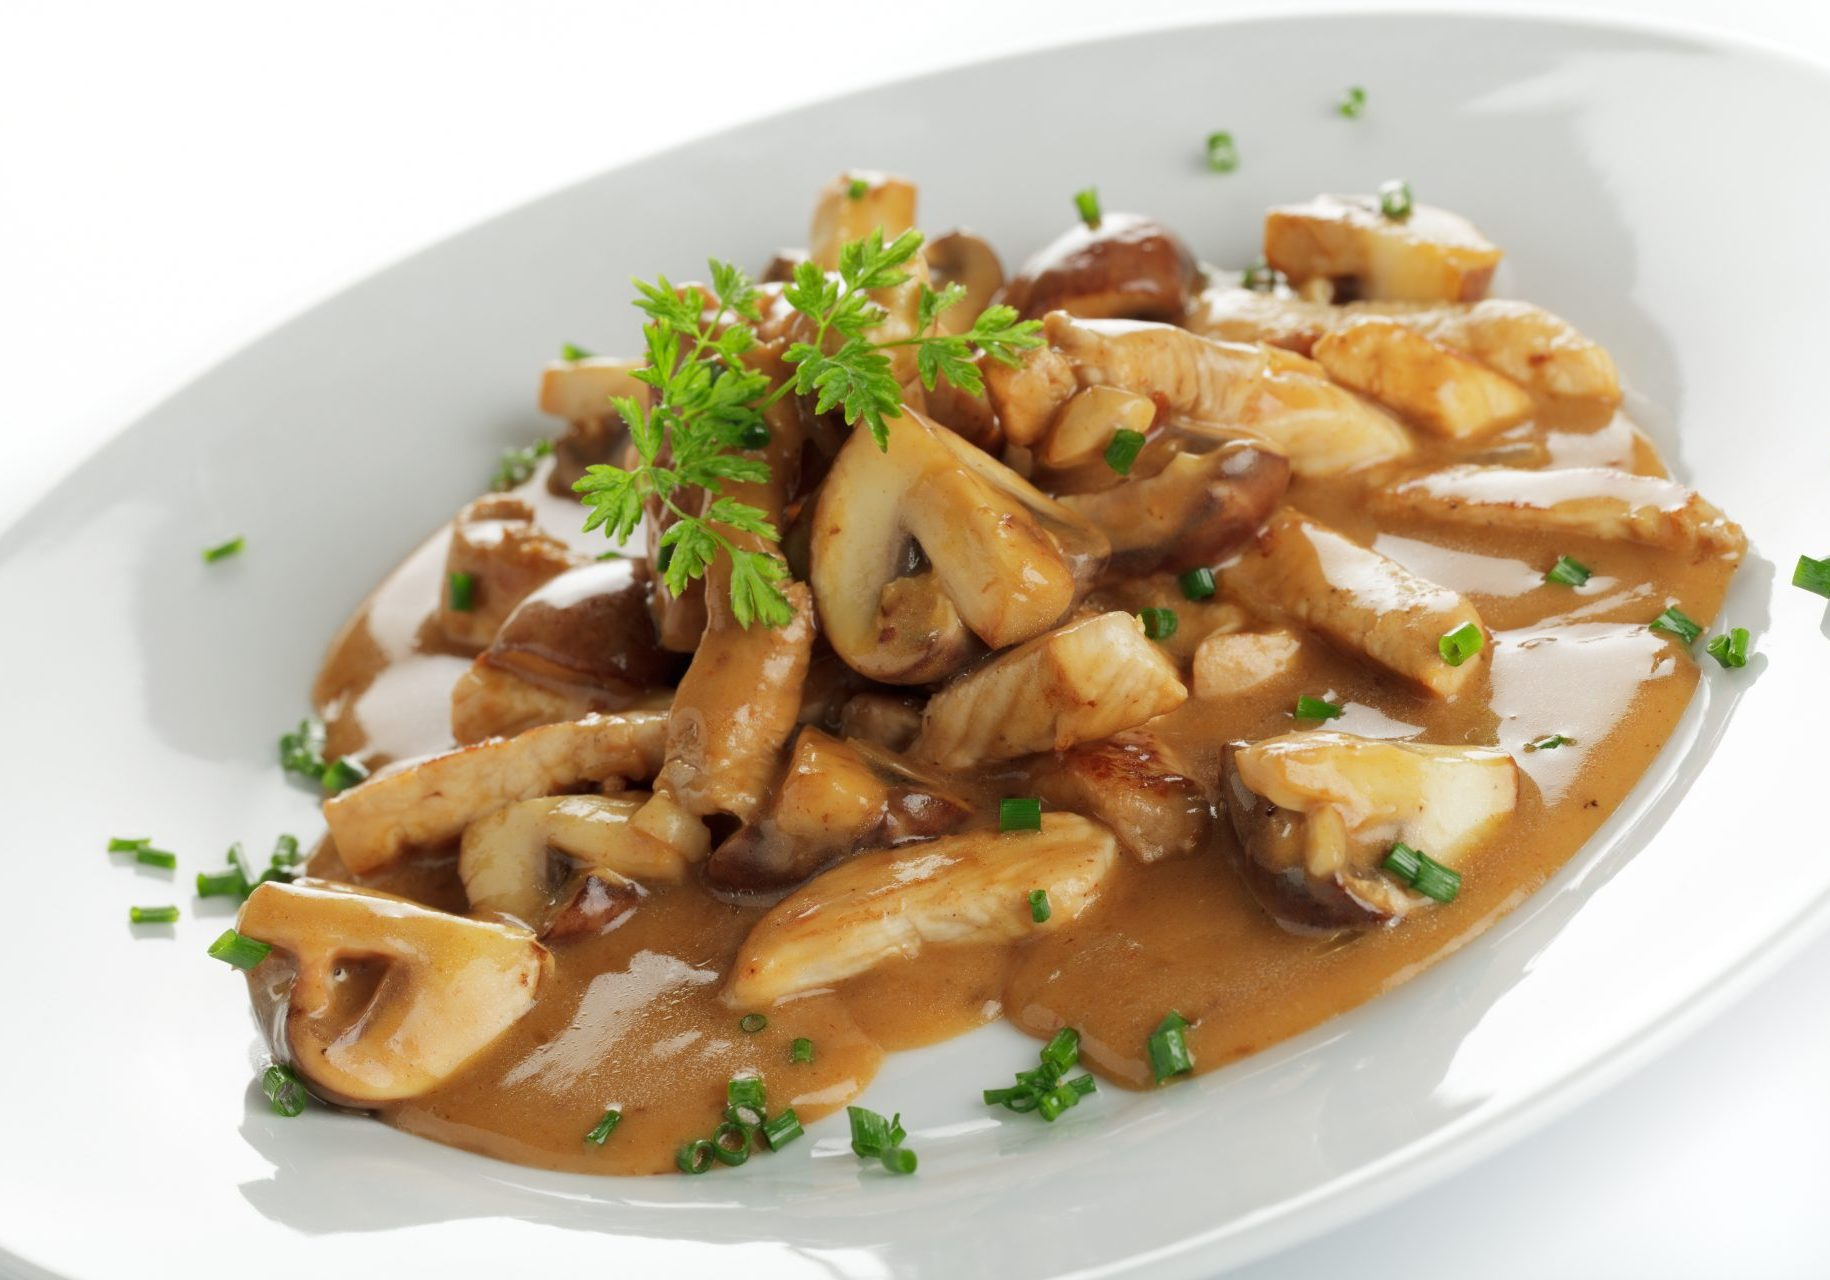 Mushrooms and meat stripes in brown sauce on a white plate